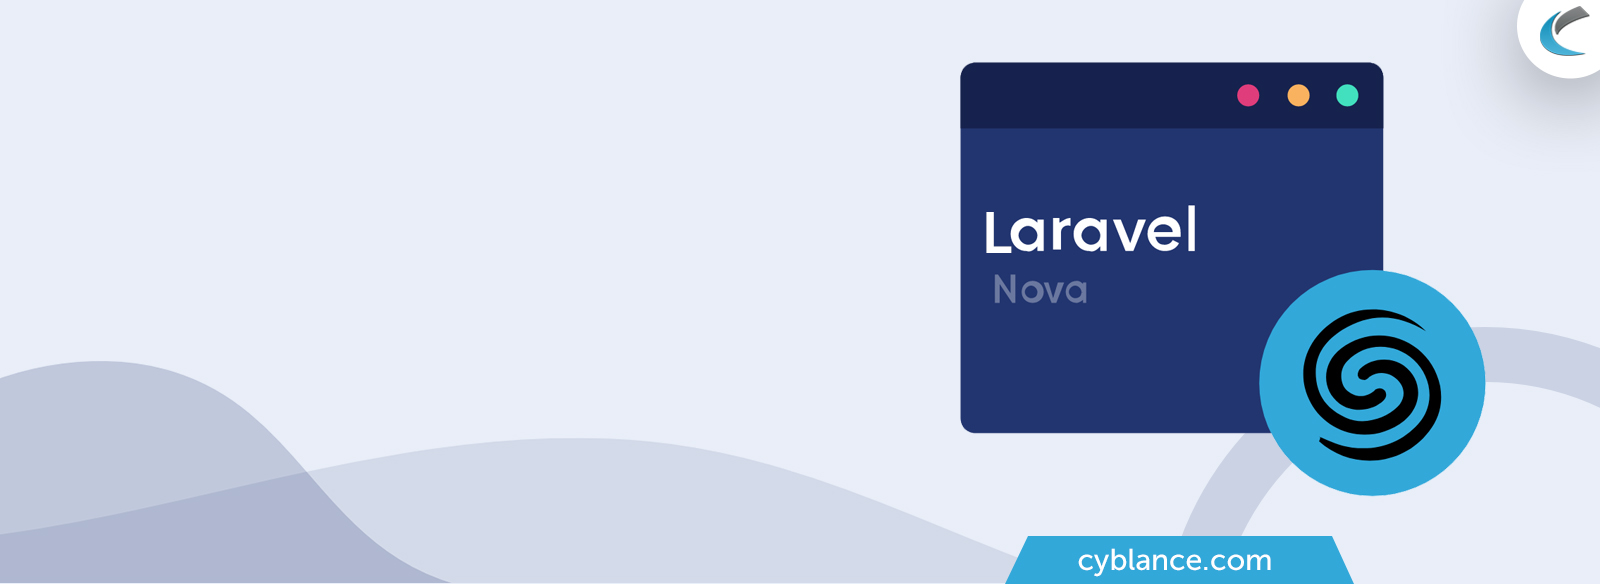 Everything you should know about Laravel Nova: a beautifully